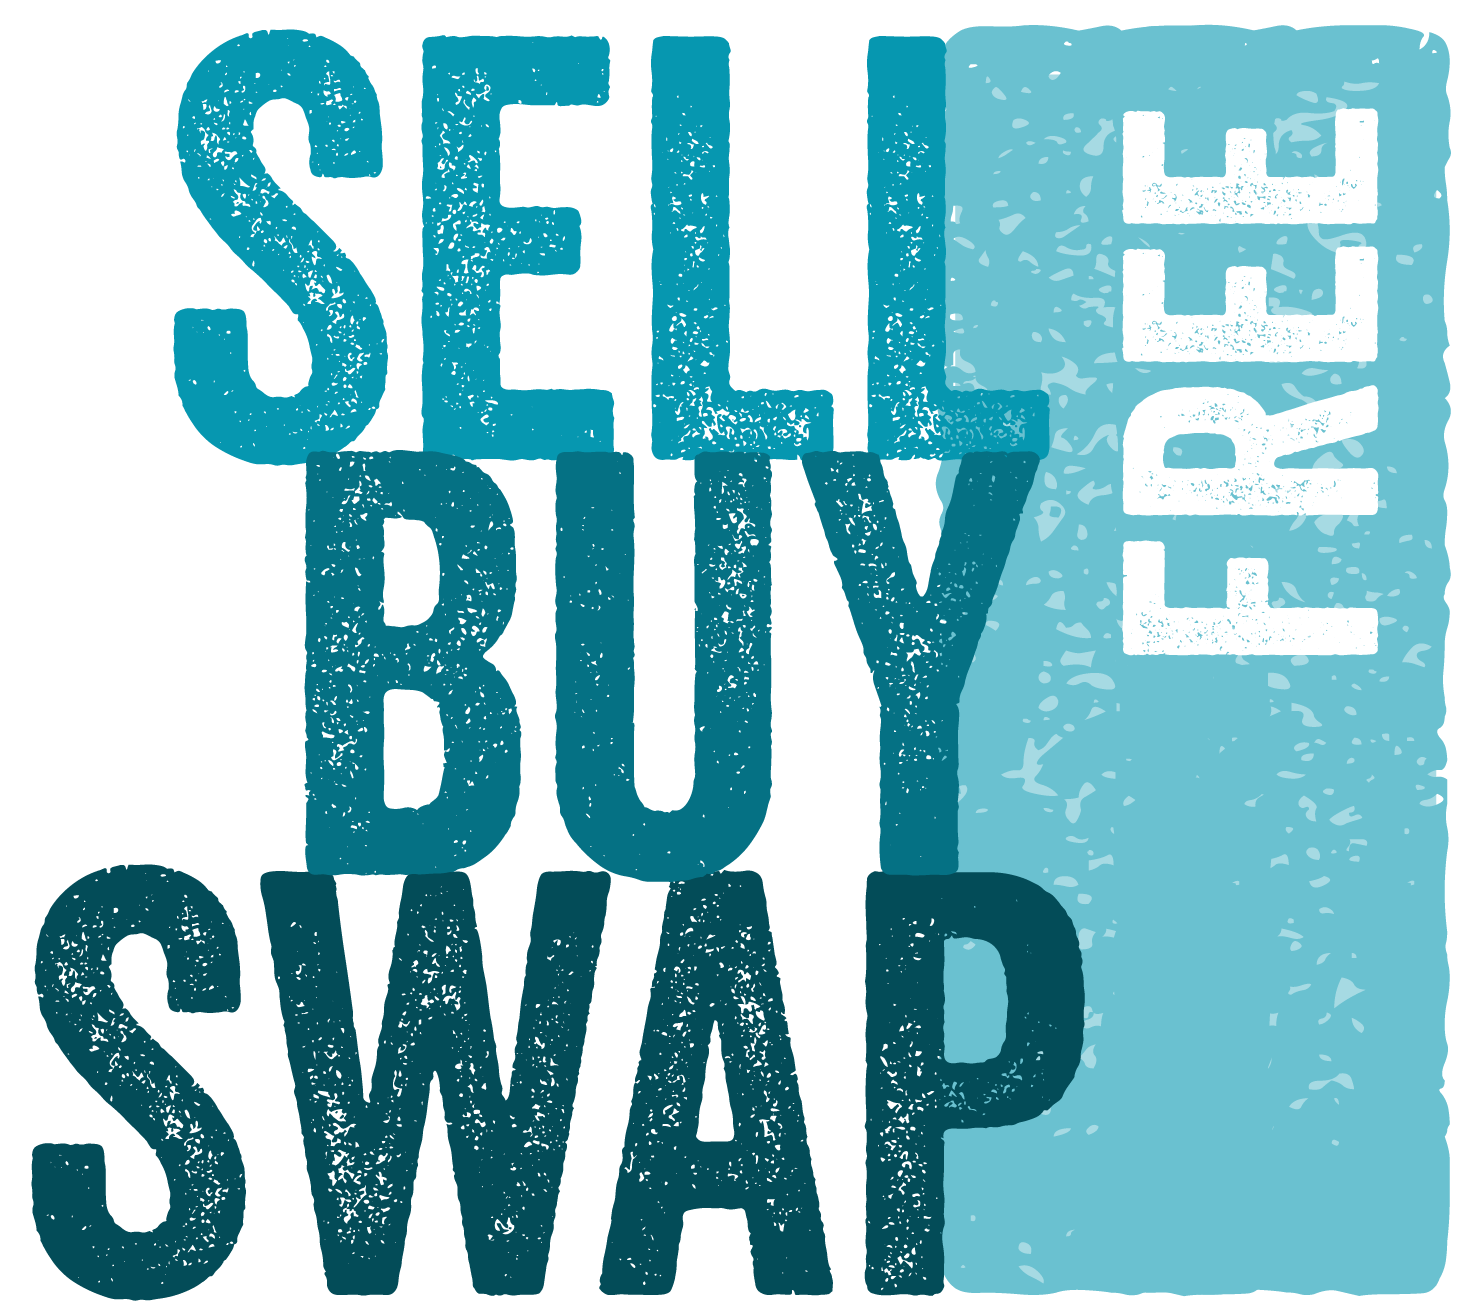 Sell Buy Swap